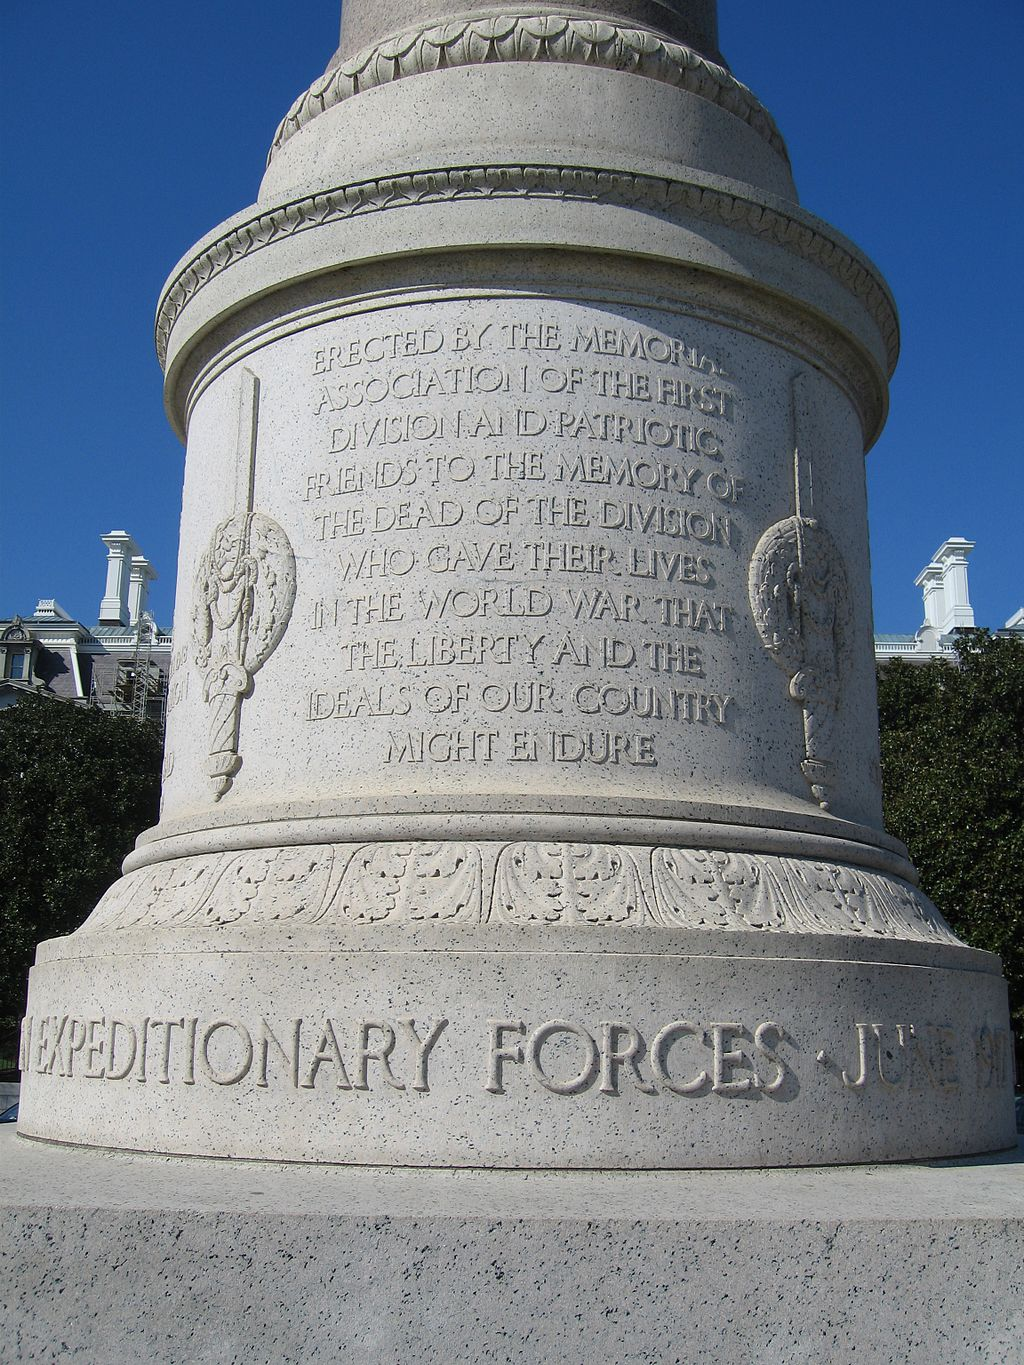 "The inscription commemorates the fallen who gave their lives so ""that the liberty and the ideals of our country might endure."" Photo by Leonard J. DeFrancisci, Wikimedia."